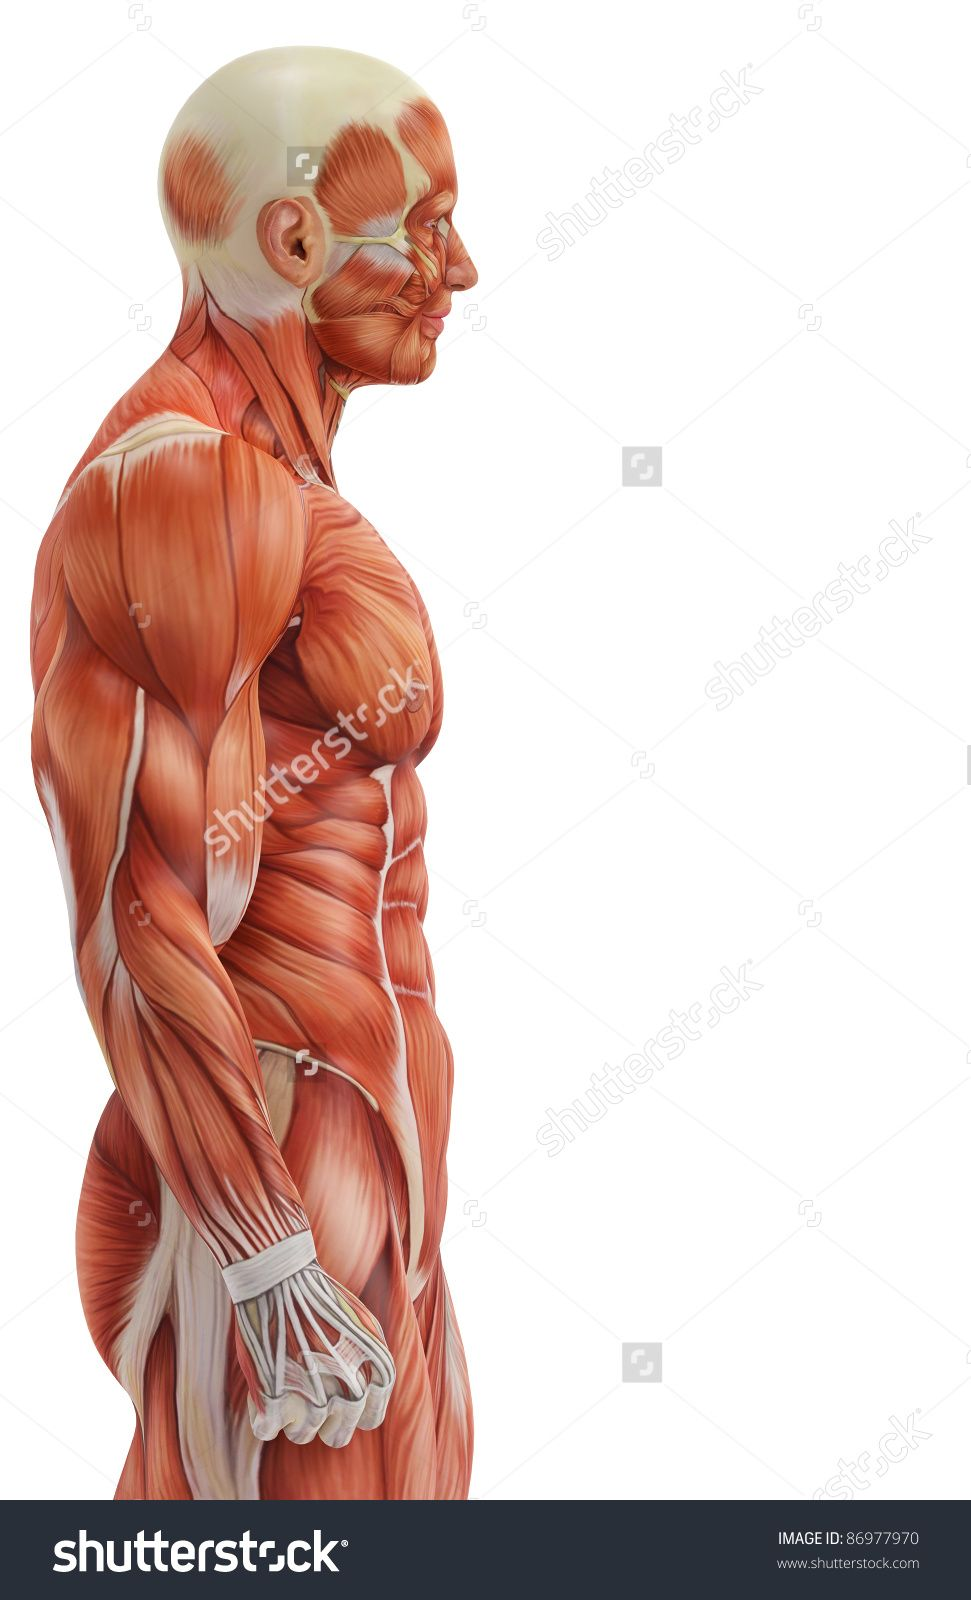 Image result for torso side muscles anatomy | accessories ...